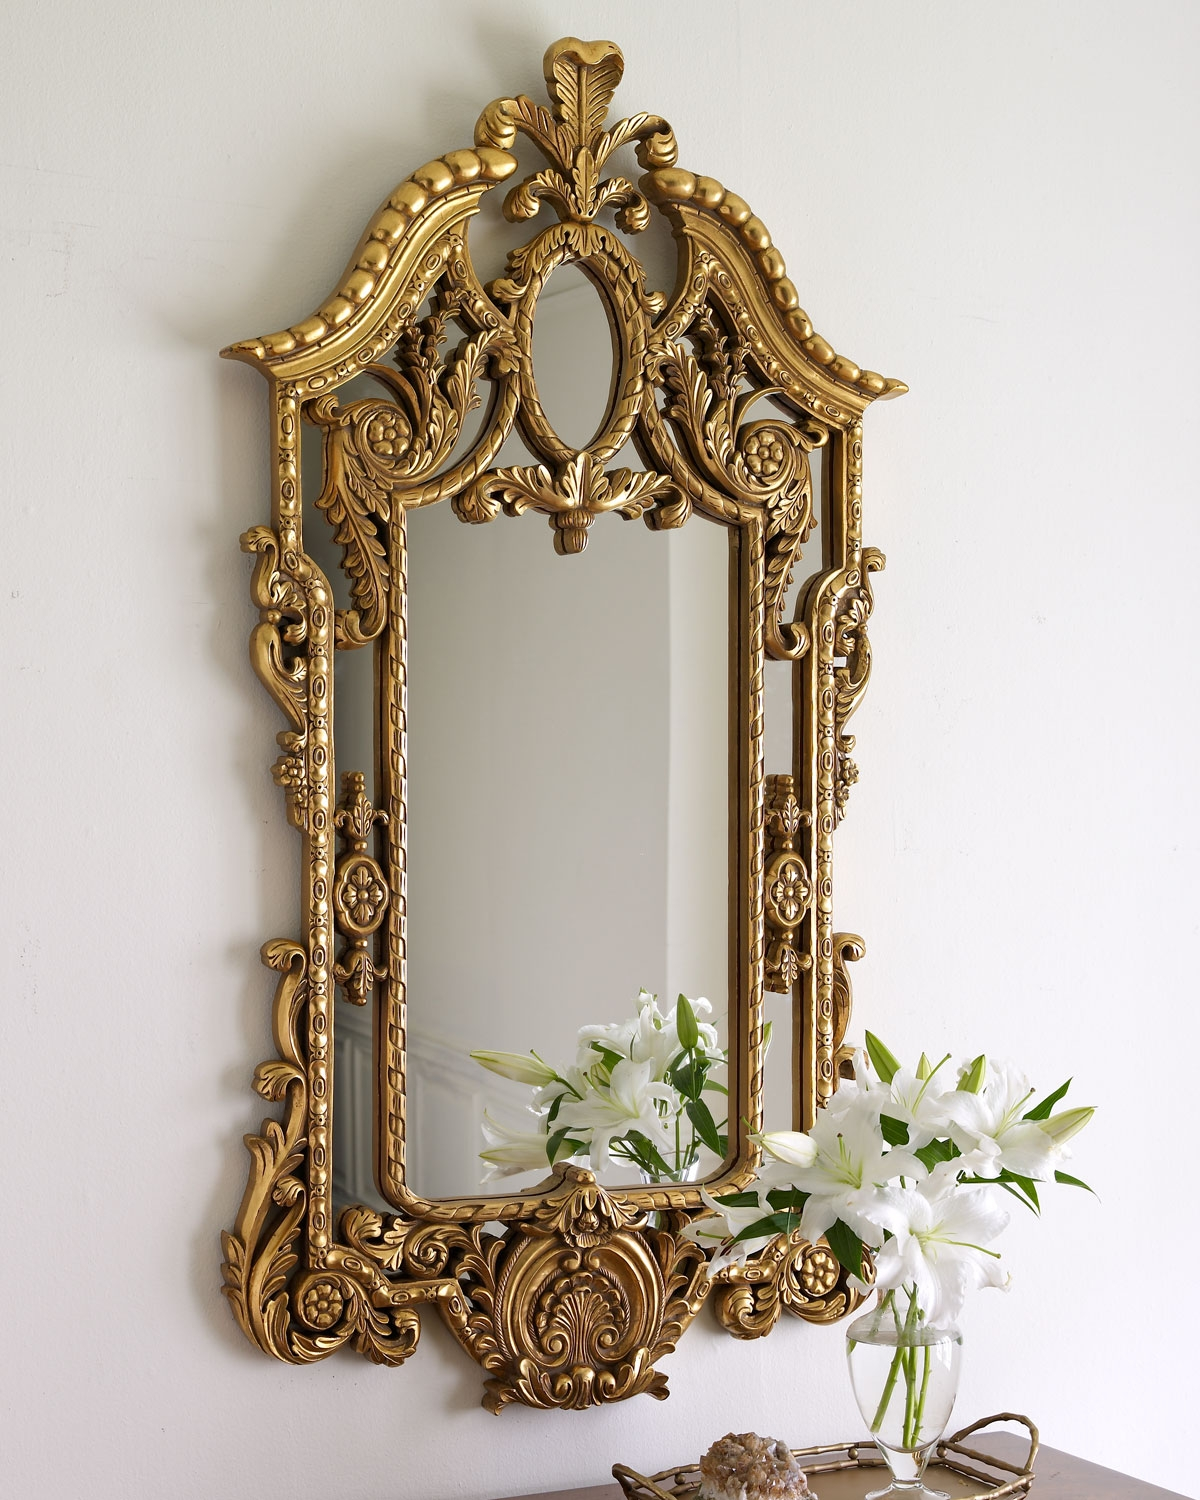 Mirror Gold Frame Antique Best Antique 2017 With Regard To Gold Antique Mirrors (Photo 11 of 15)